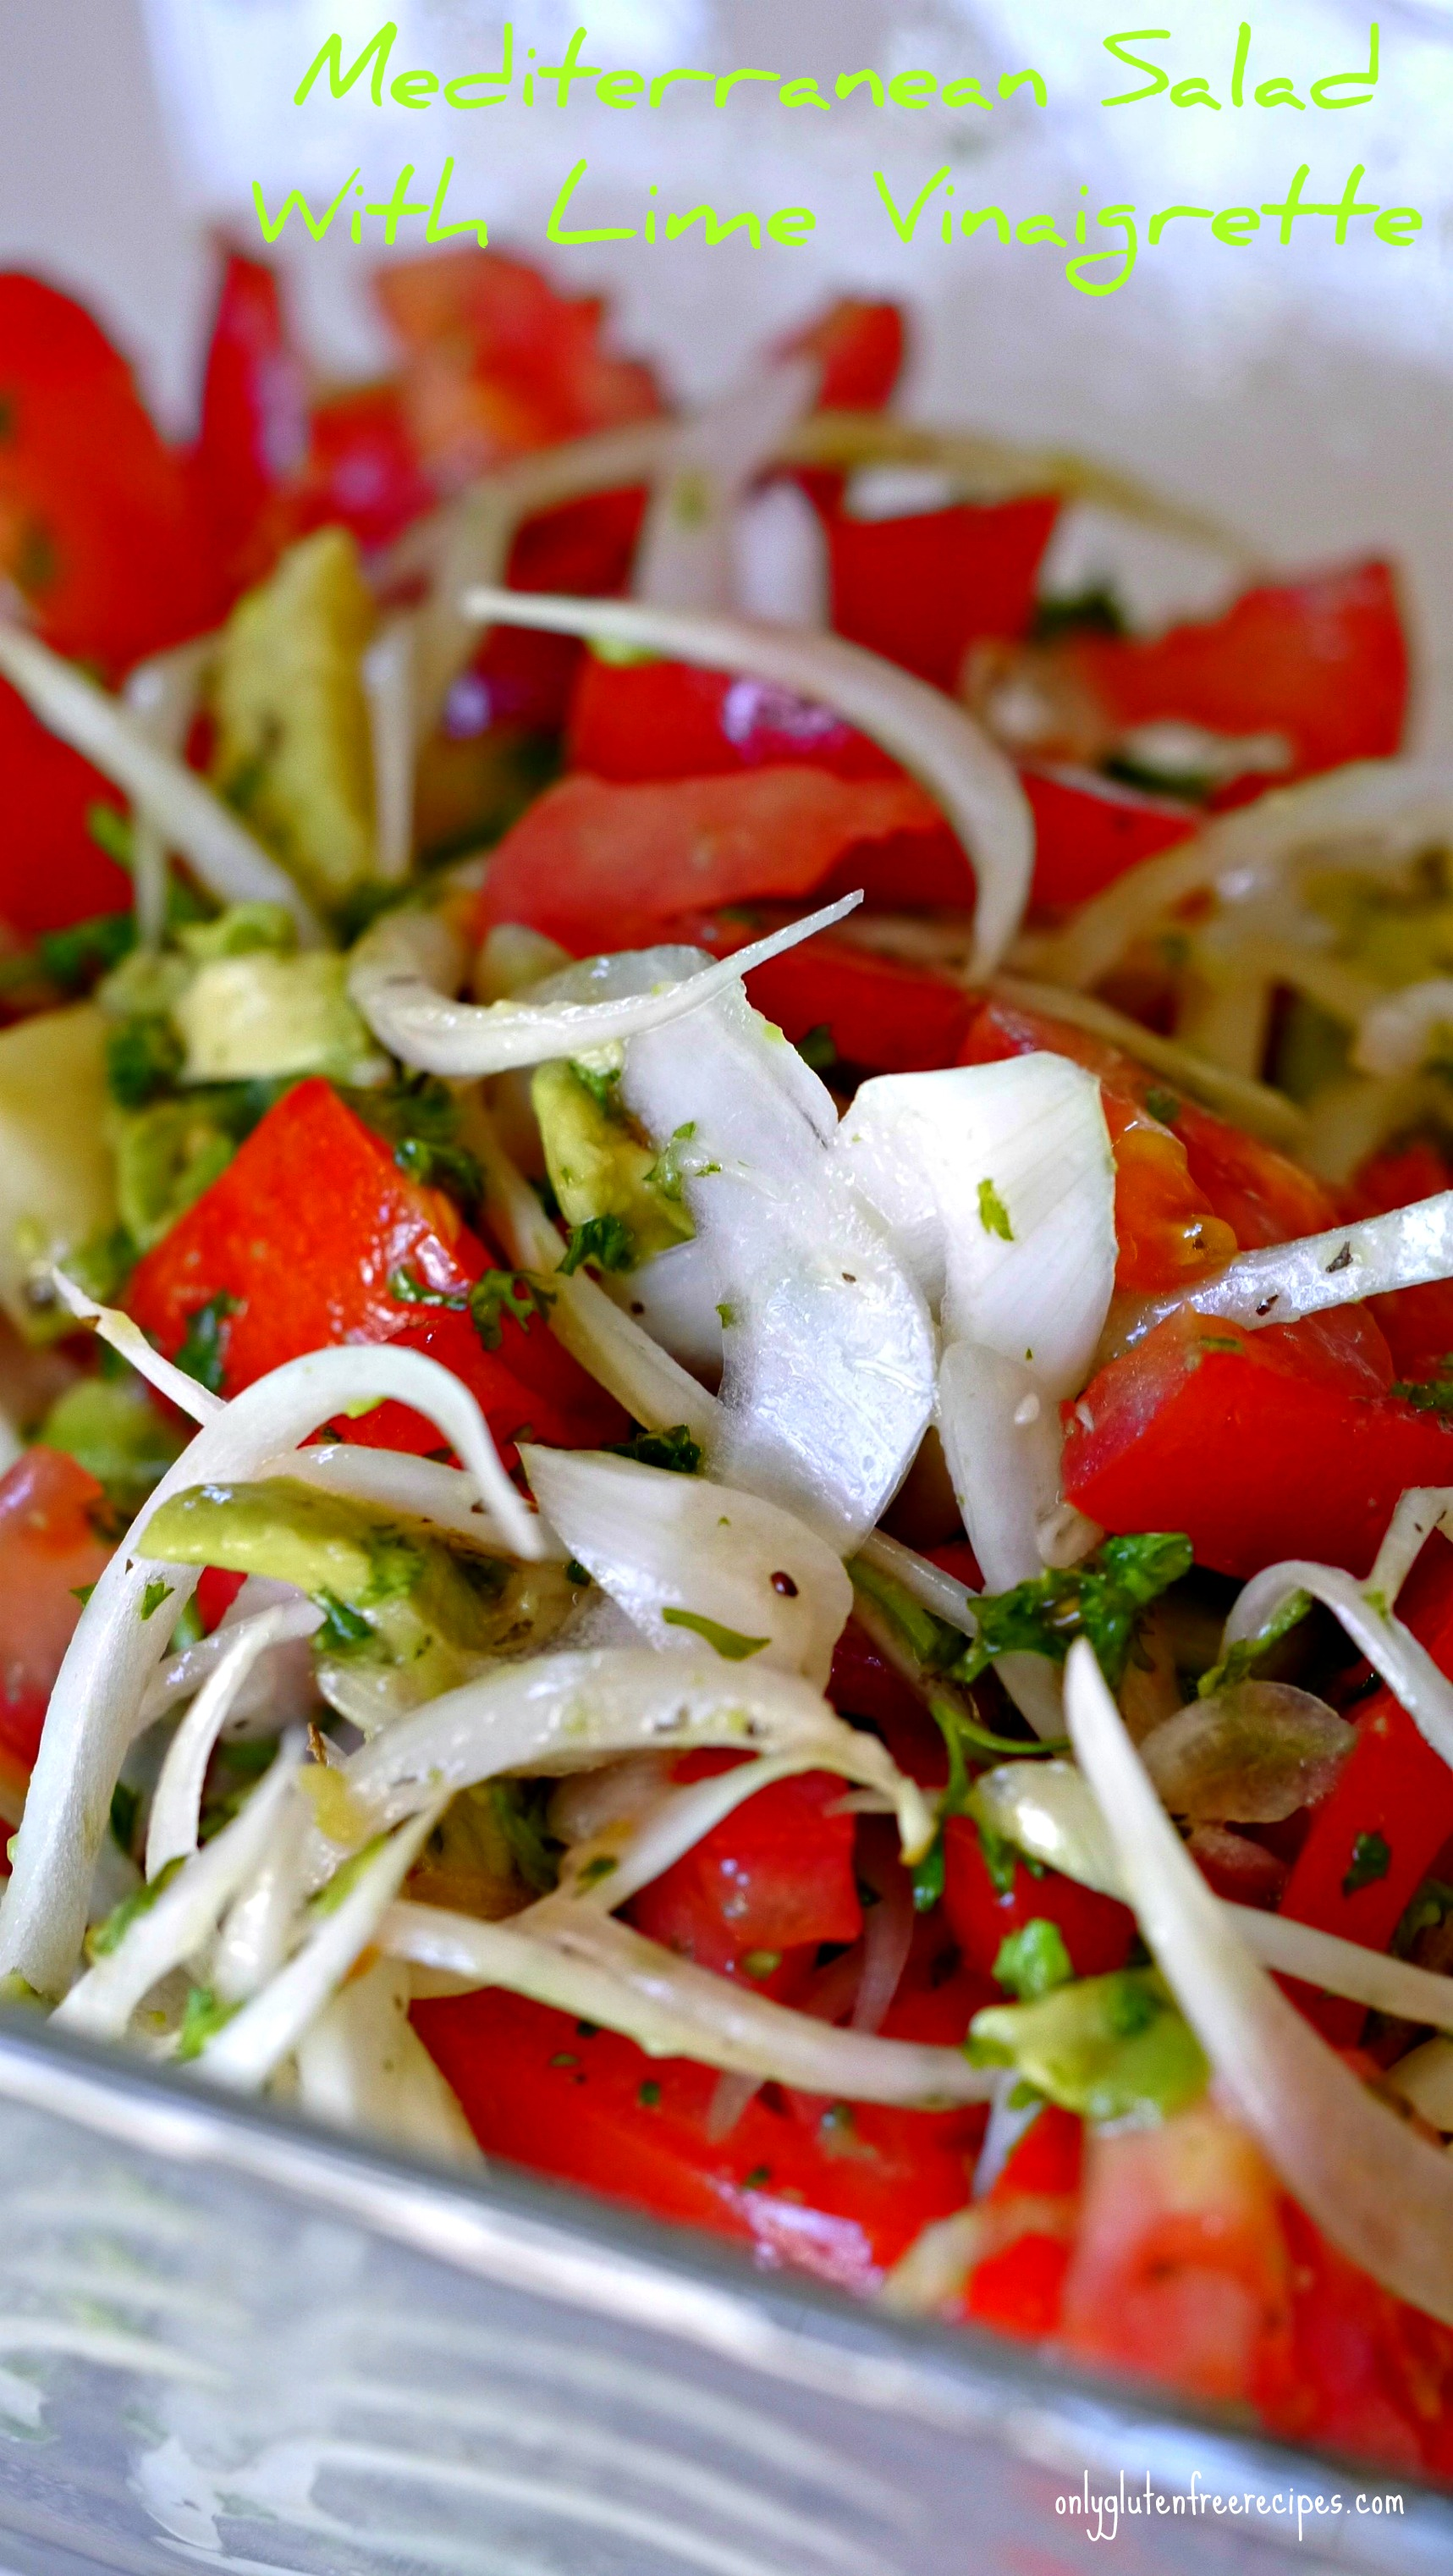 Mediterranean Salad With Lime Vinaigrette - Only Gluten Free Recipes